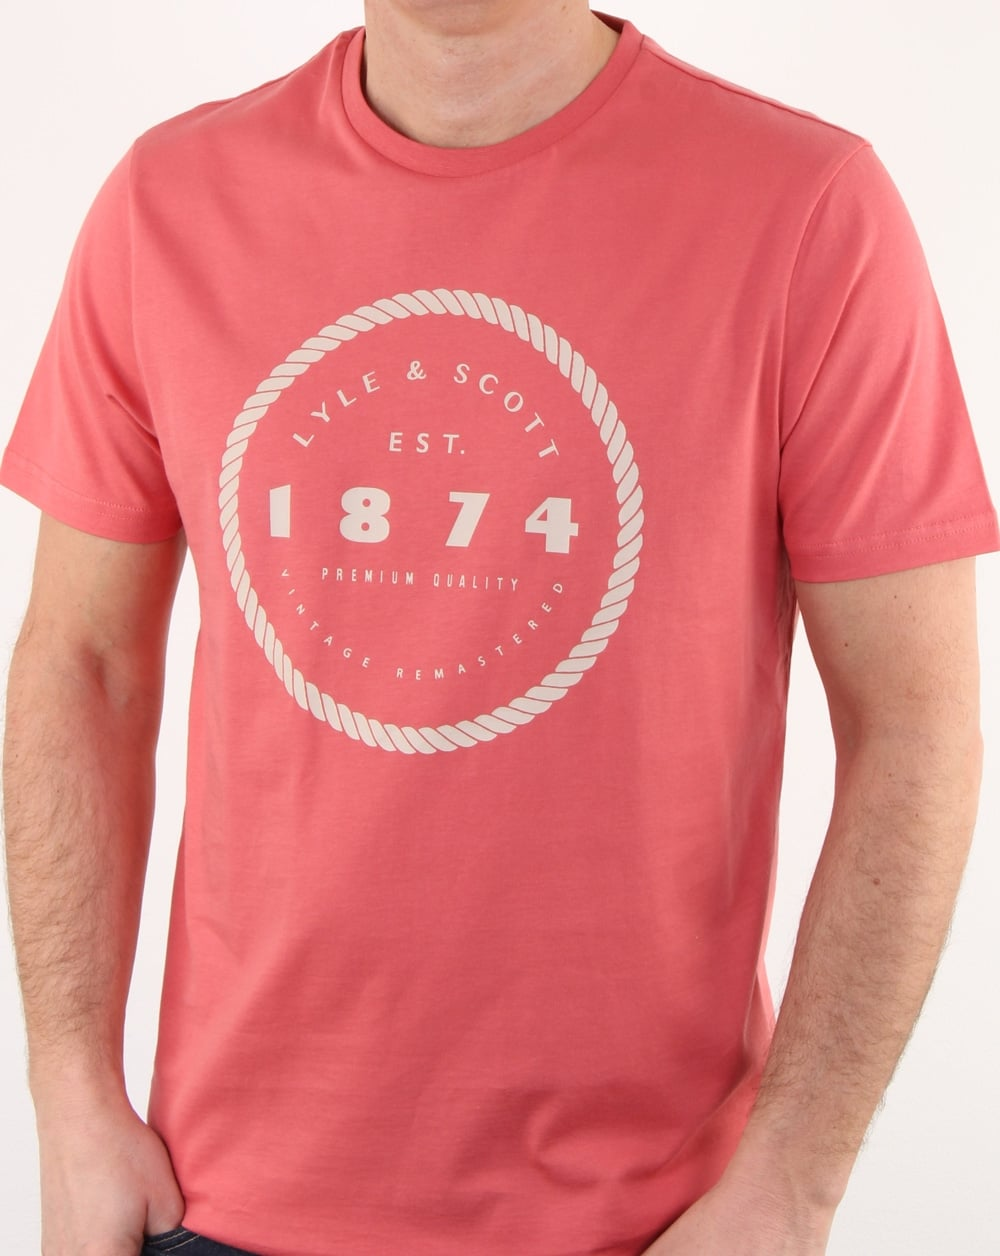 Lyle and scott graphic print t shirt sunset pink mens for Graphic print t shirts